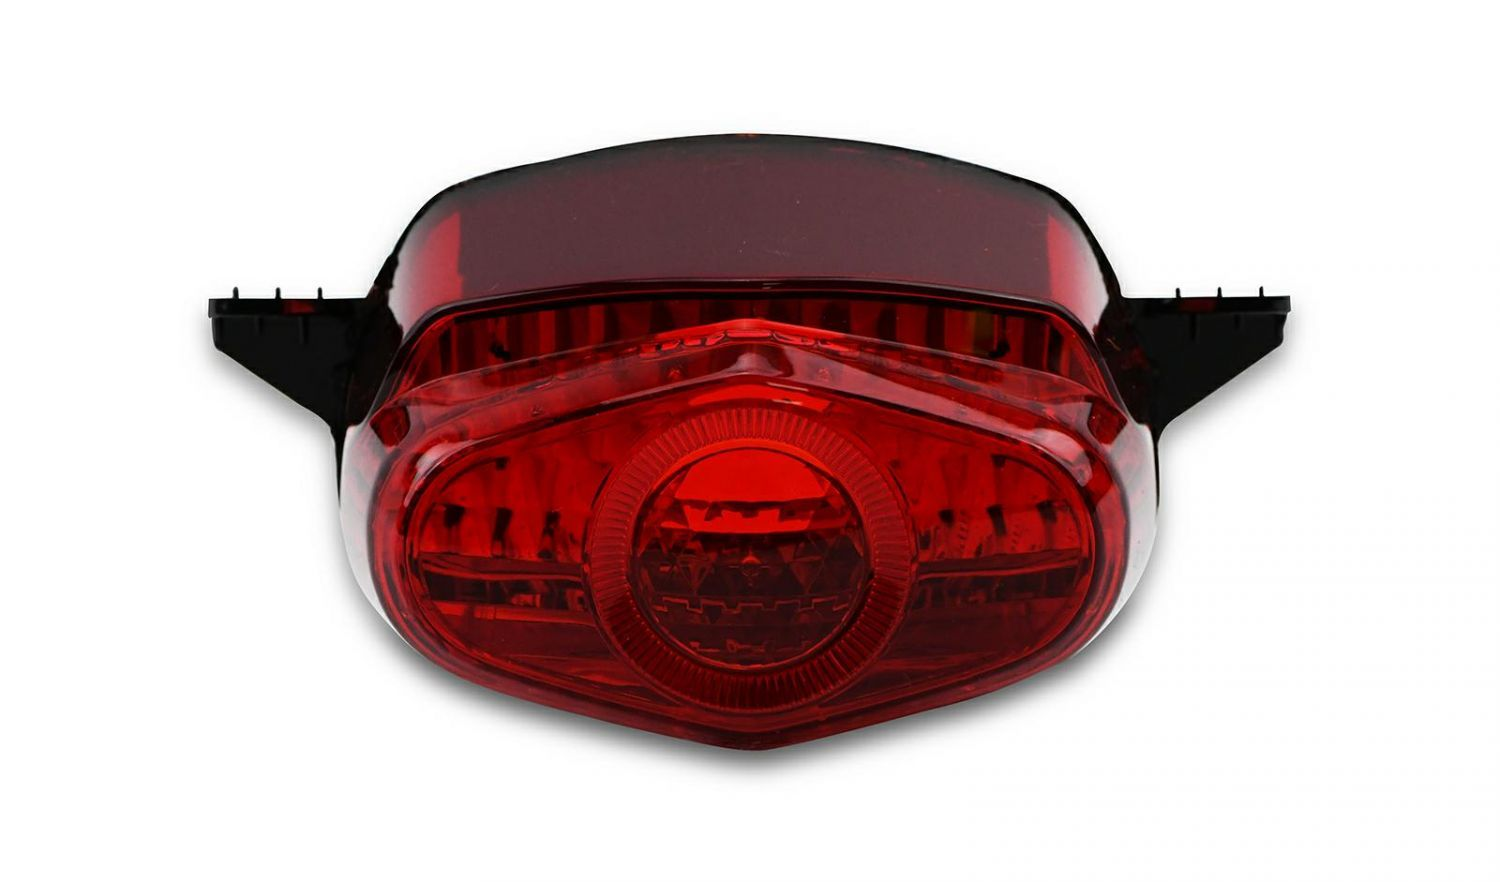 Taillights - 571220Z image